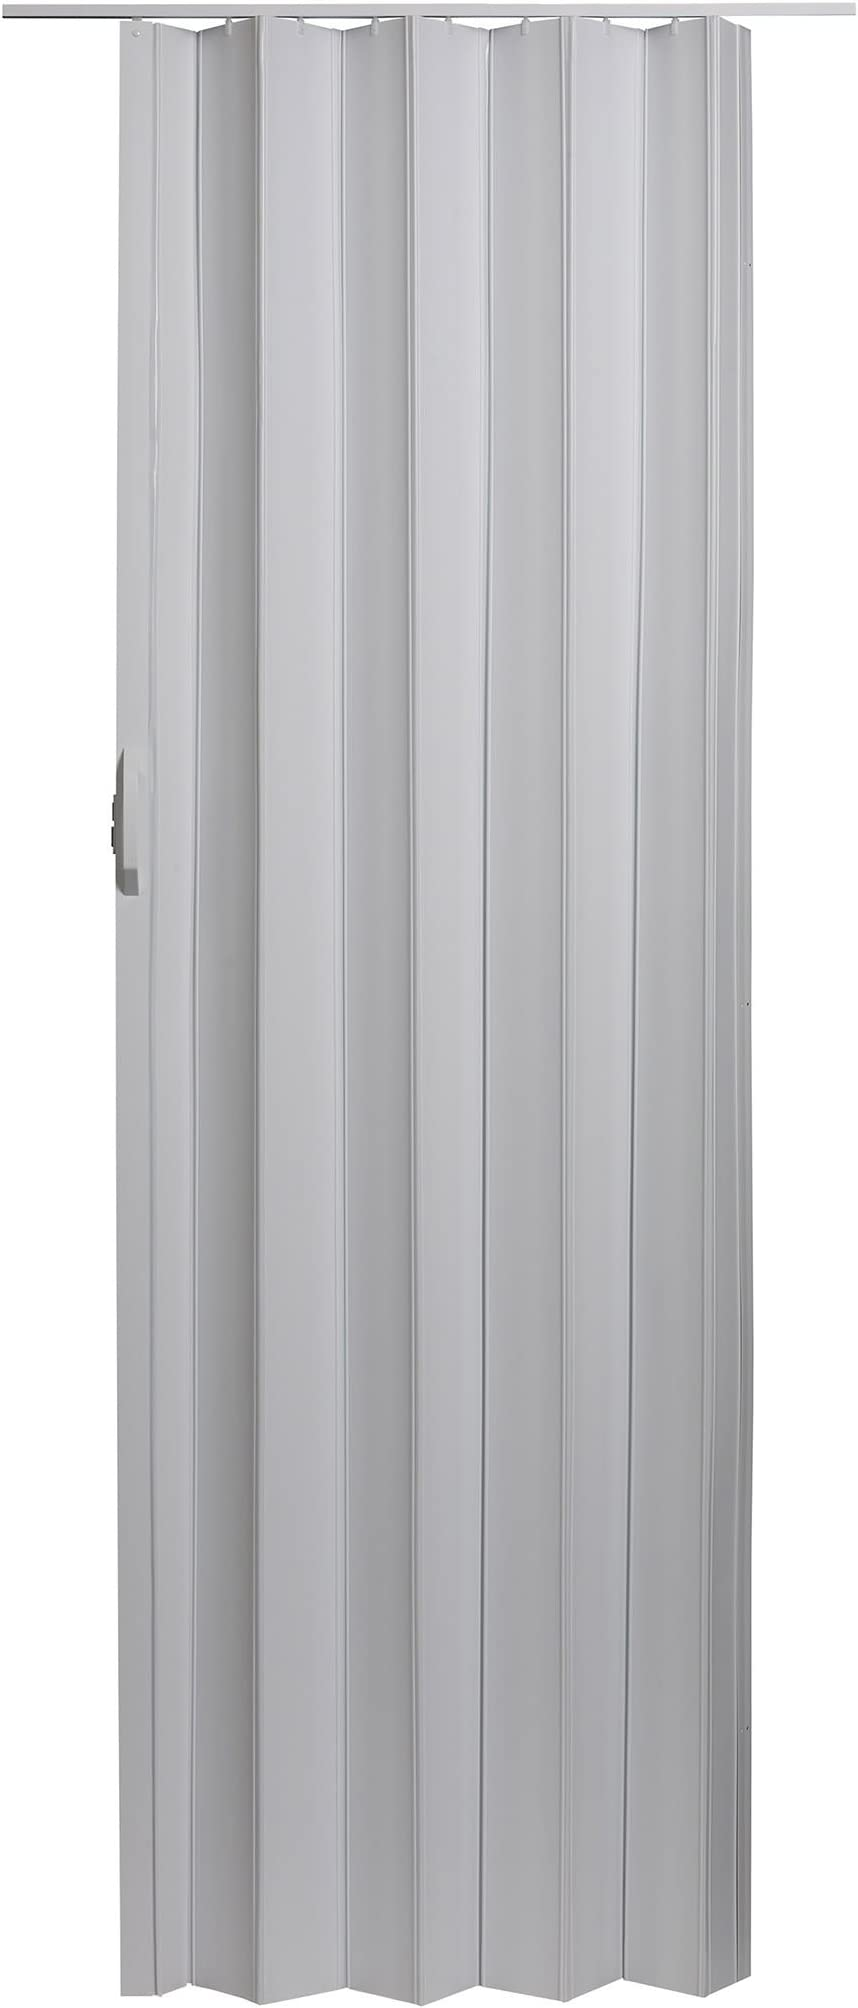 Spectrum VS3280H Via 24  to 36  x 80  Accordion Folding Door White  sc 1 st  Amazon.com & Interior u0026 Closet Doors | Amazon.com | Building Supplies - Doors